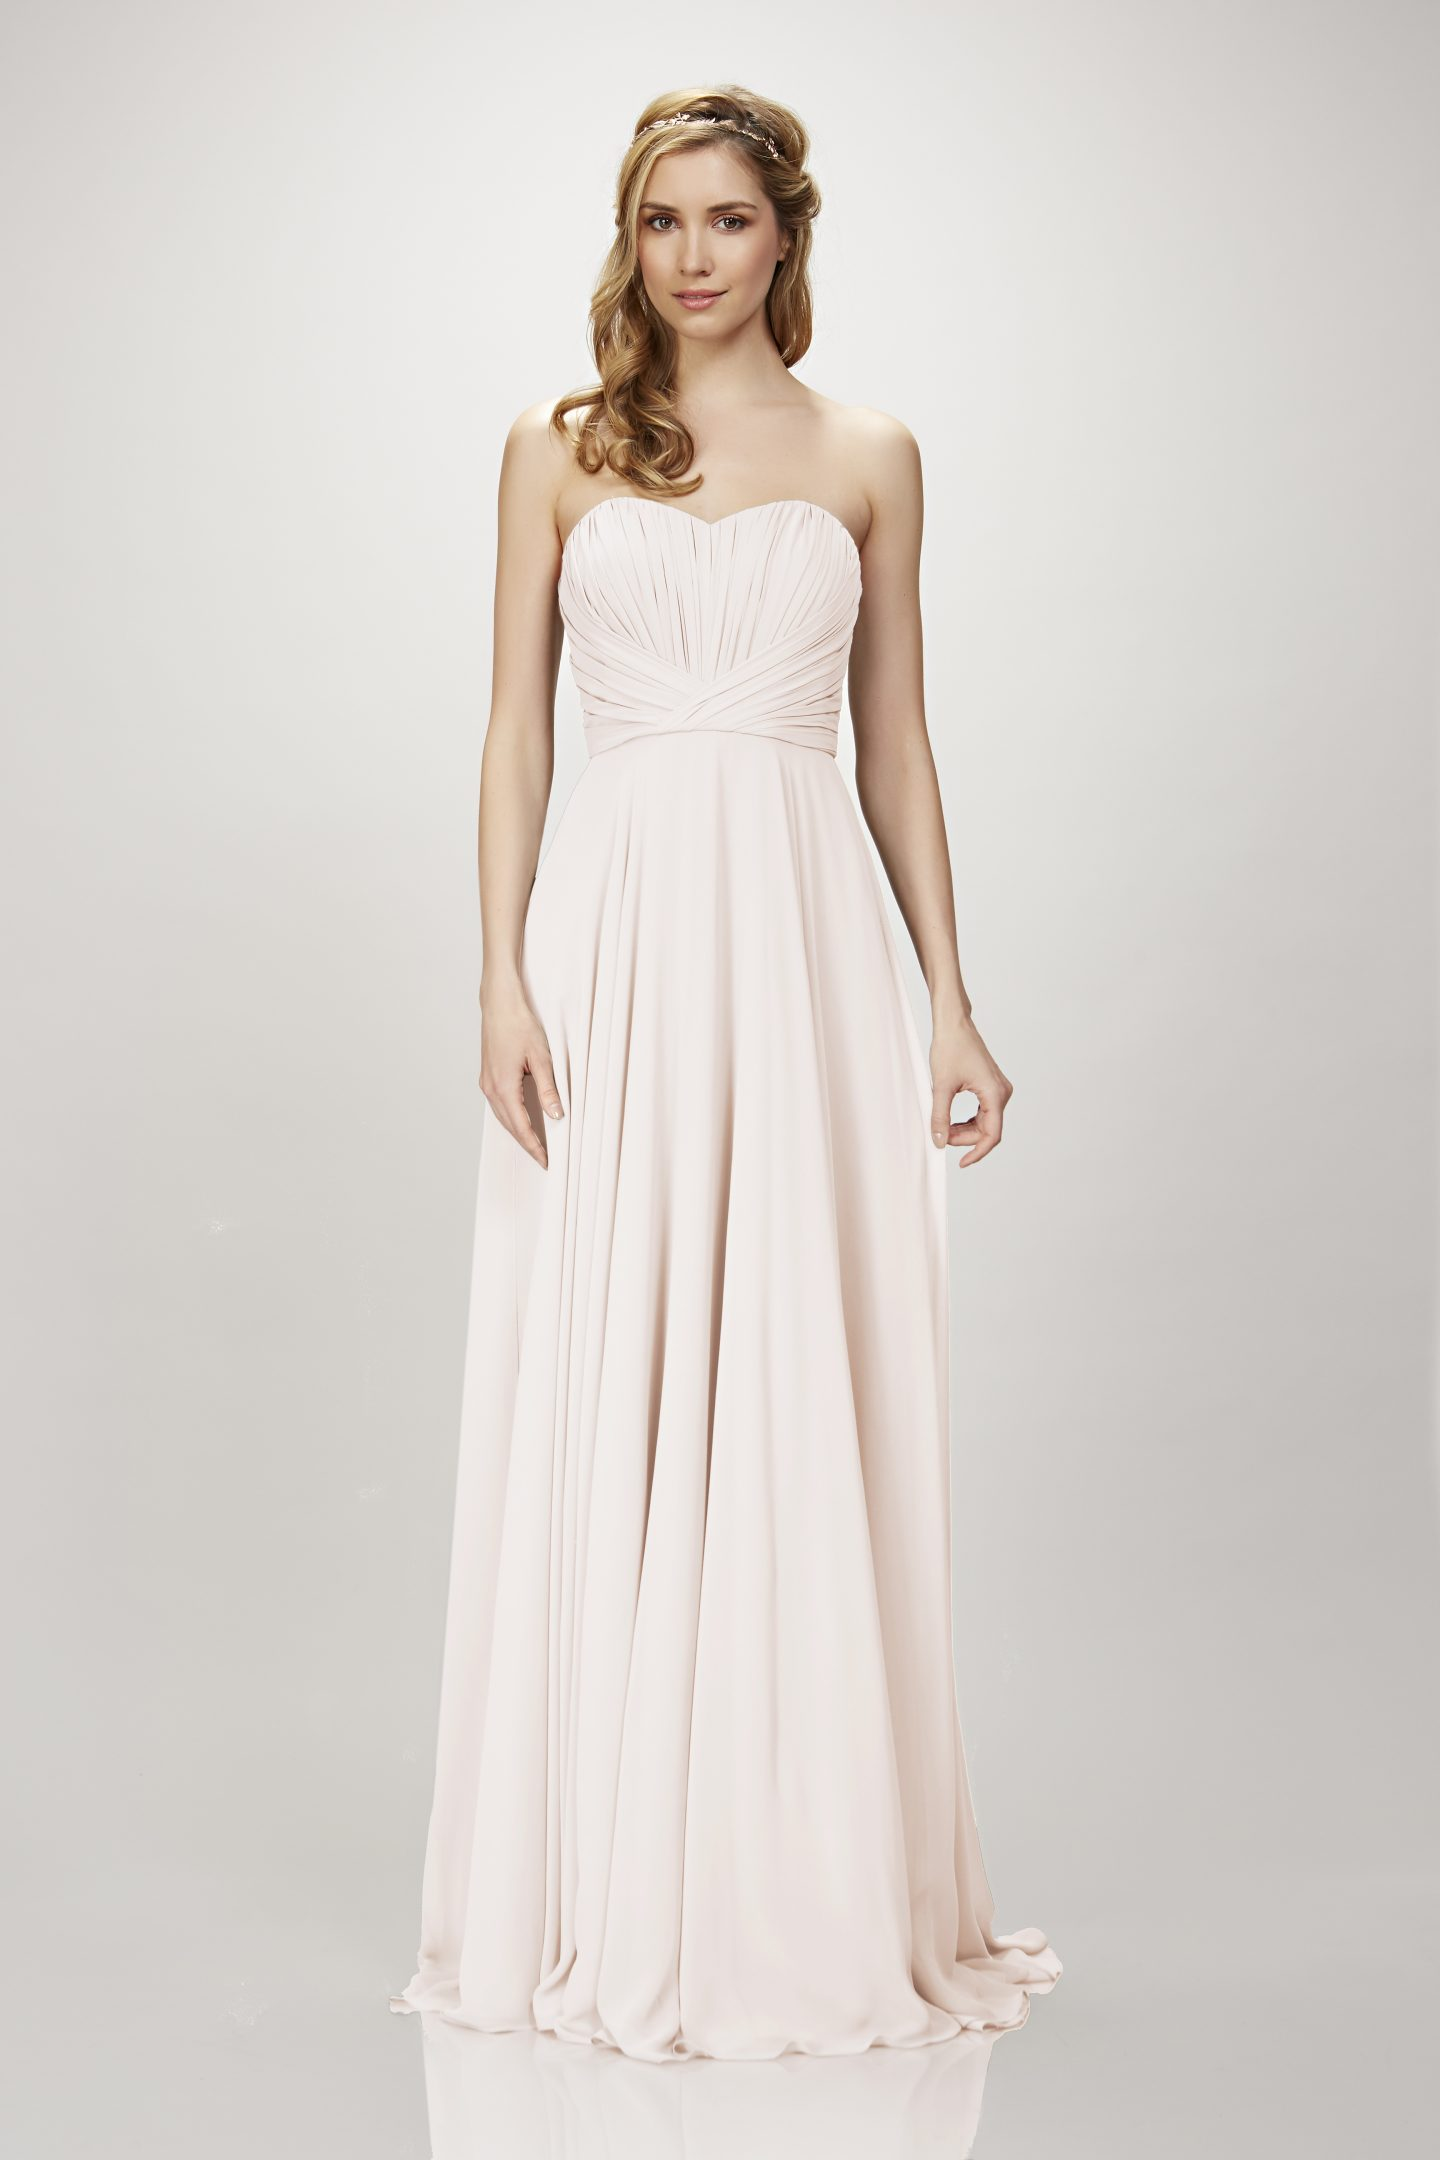 Magnolia Bridal Bridesmaid Dresses 3.jpg